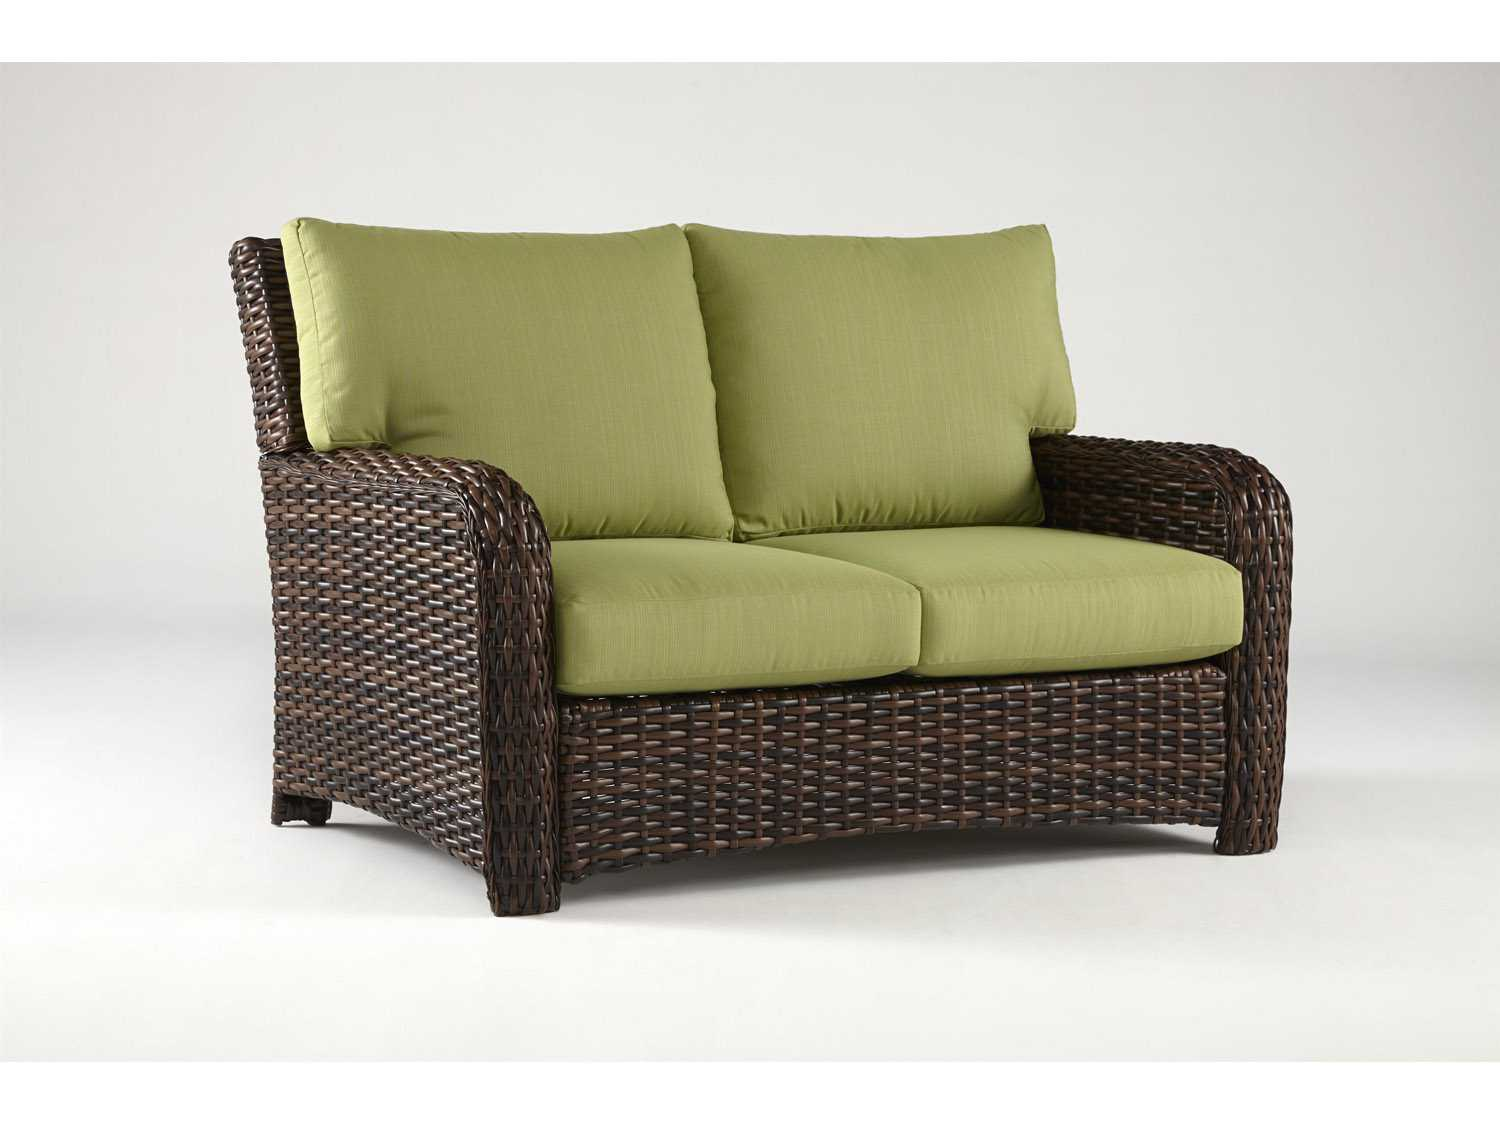 South Sea Rattan St Tropez Wicker Cushion Arm Loveseat 79302